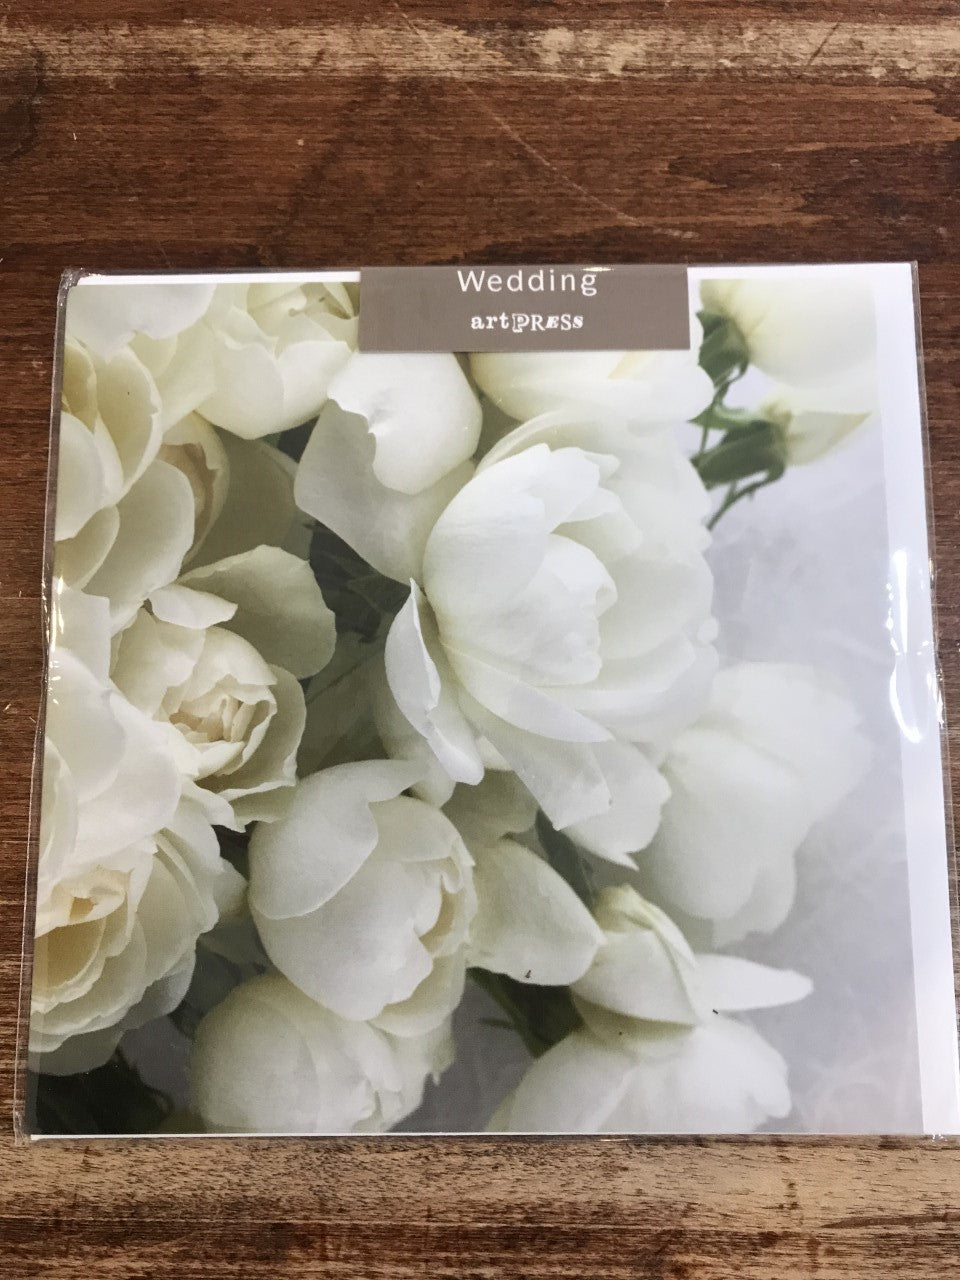 Artpress Wedding Card-White Rose Bouquet